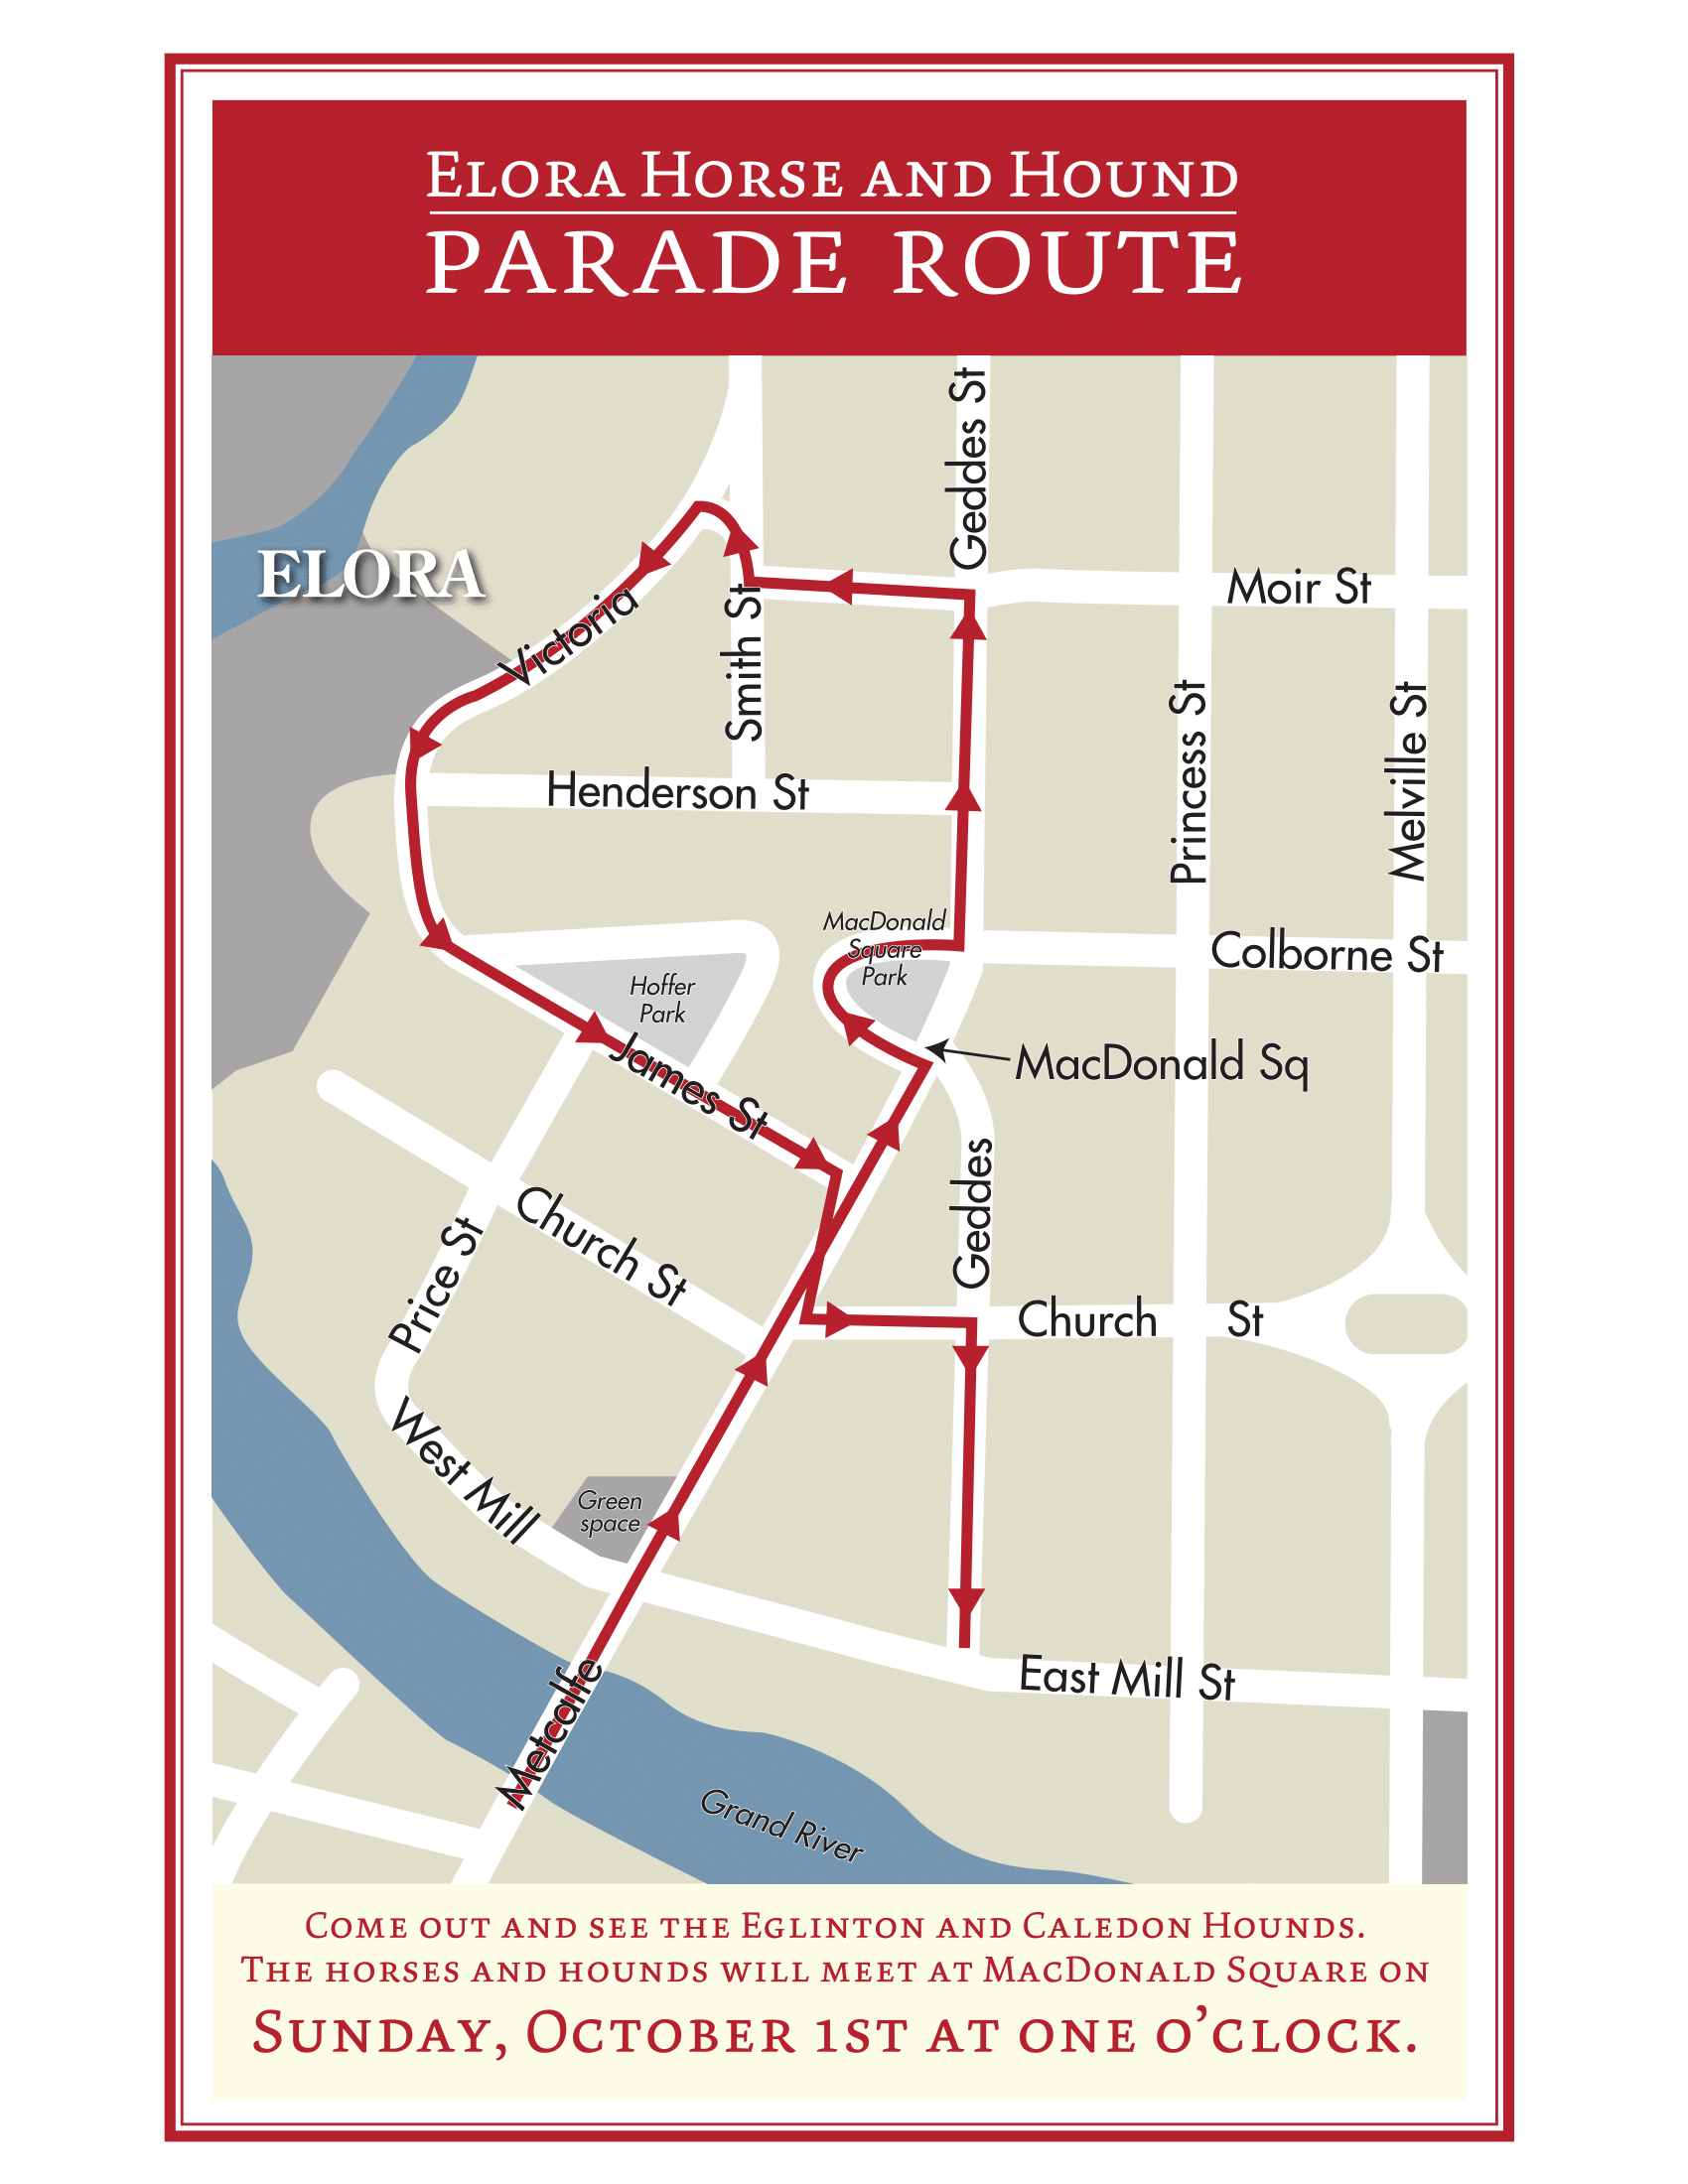 hourse and hound 2017 parade route